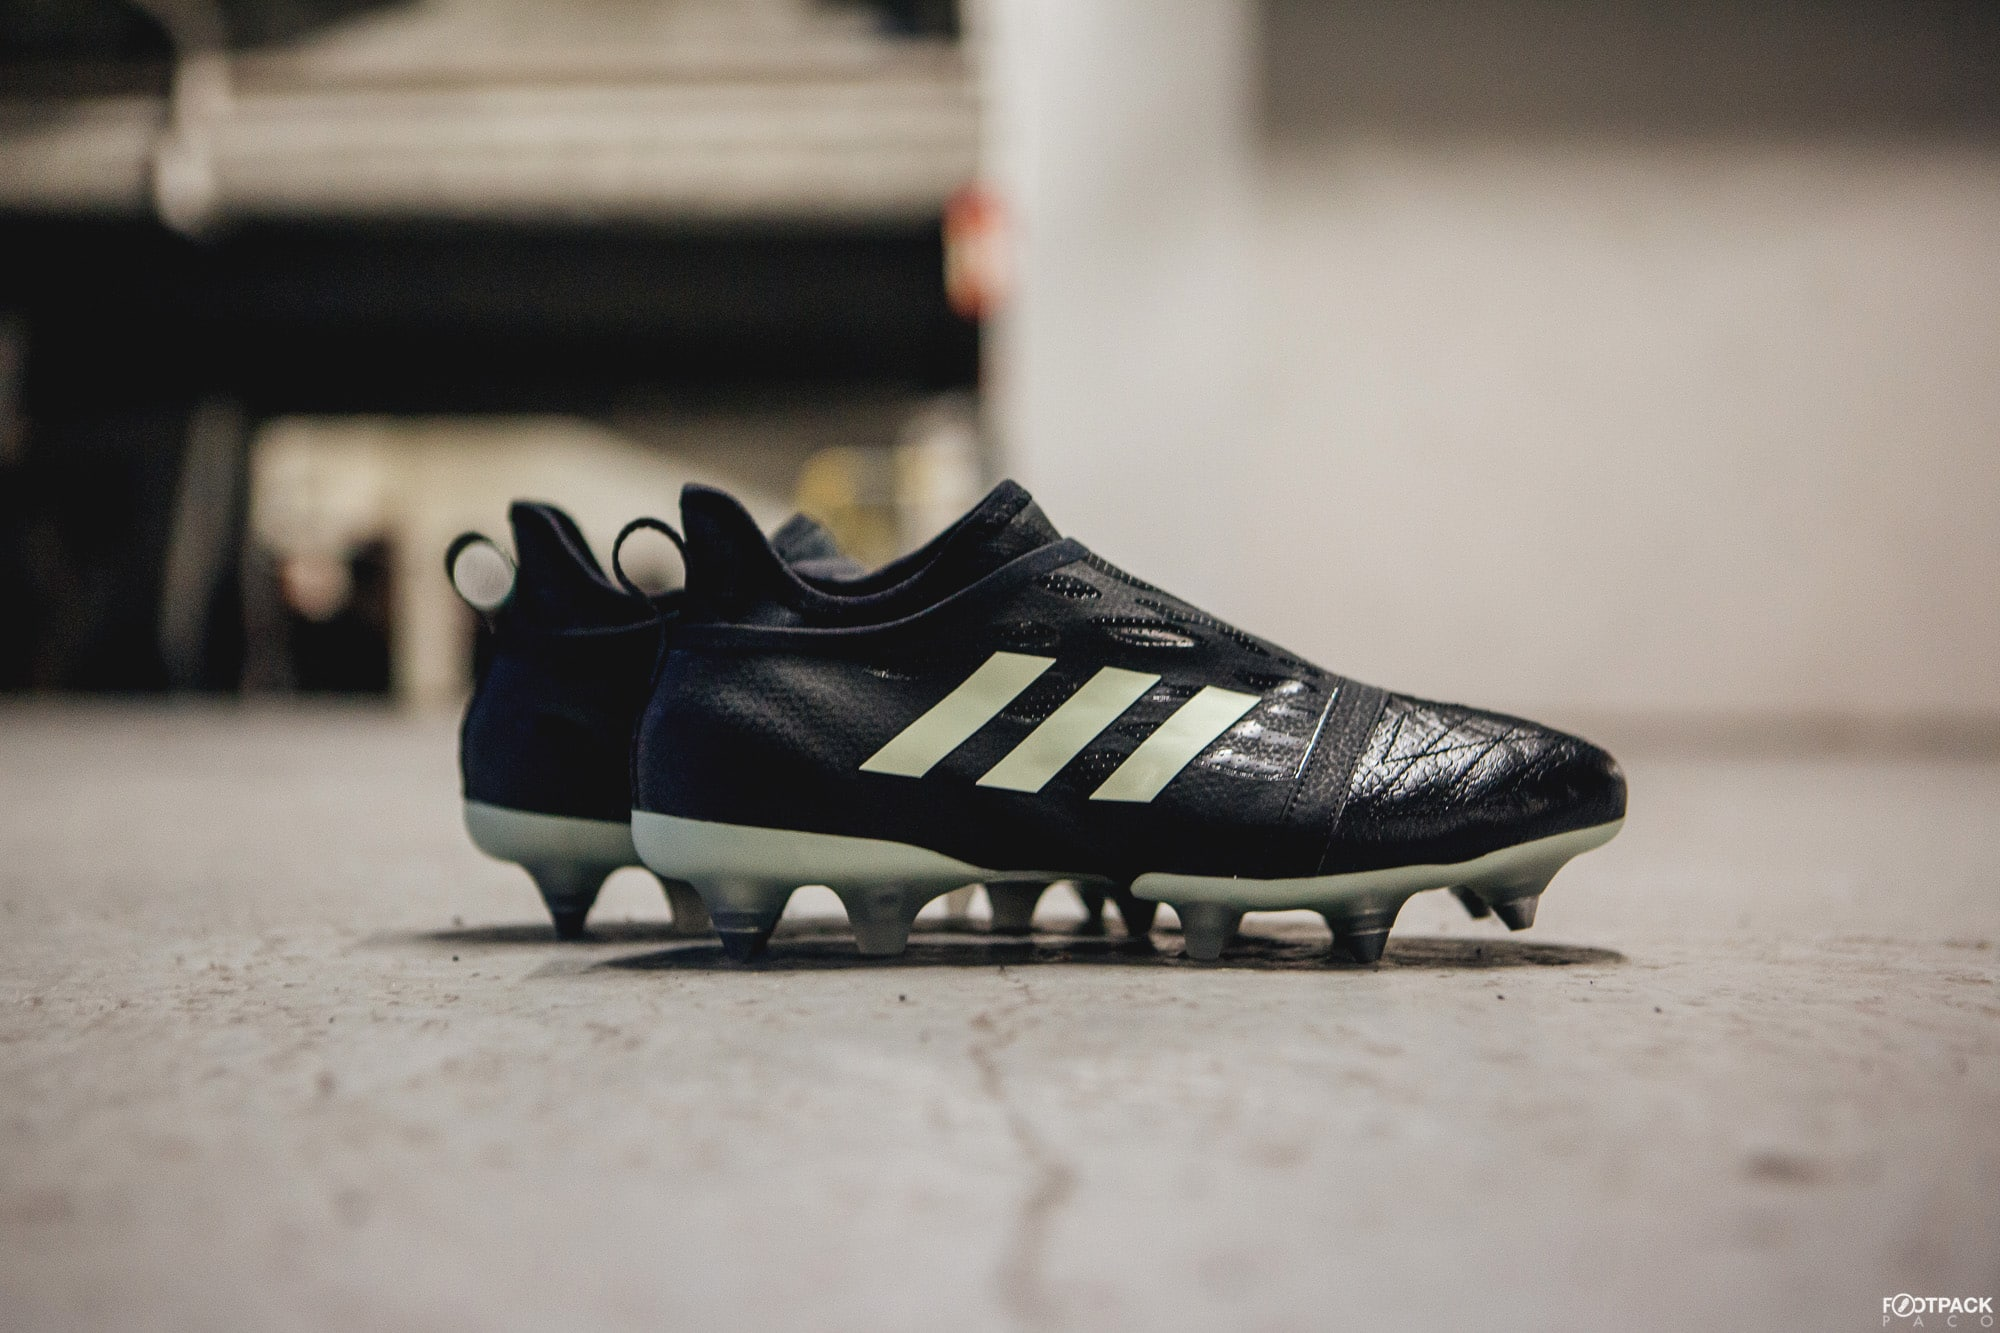 chaussure-football-adidas-football-glitch-noctornal-janvier-2018-5